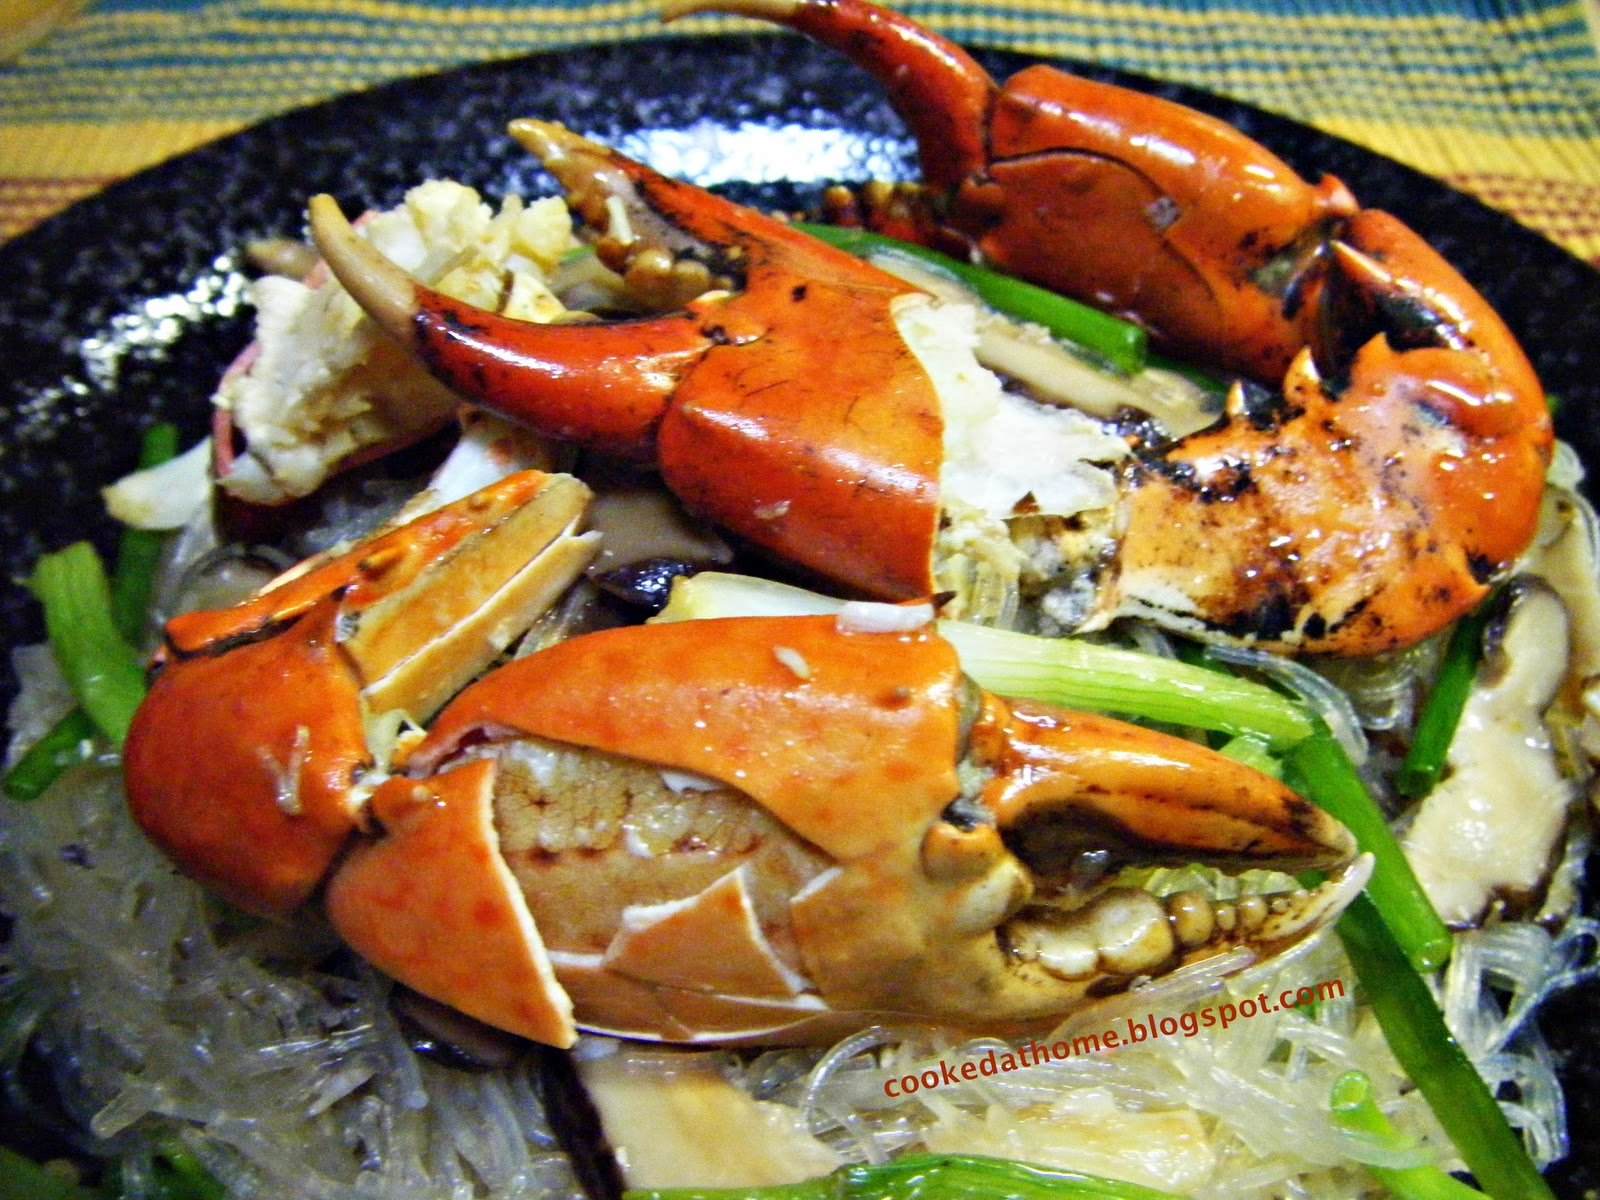 Cooking @ Home: Crab Claw Glass Noodles (Tanghoon)